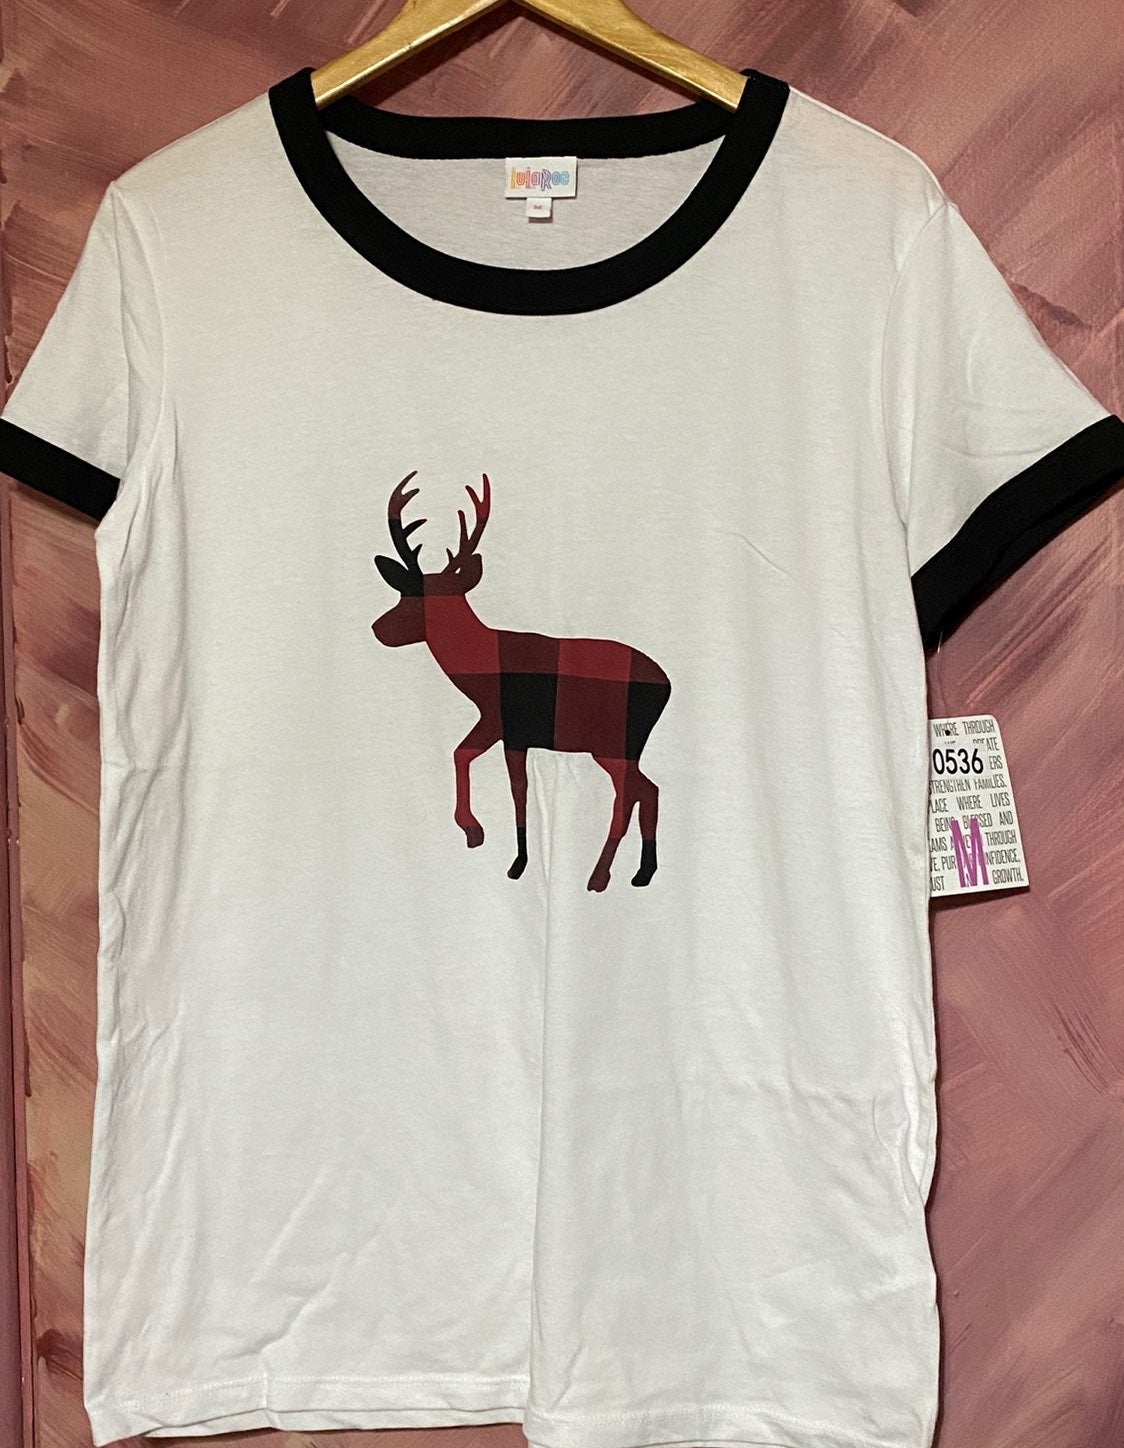 LuLaRoe White Cotton, Polyester T-shirt